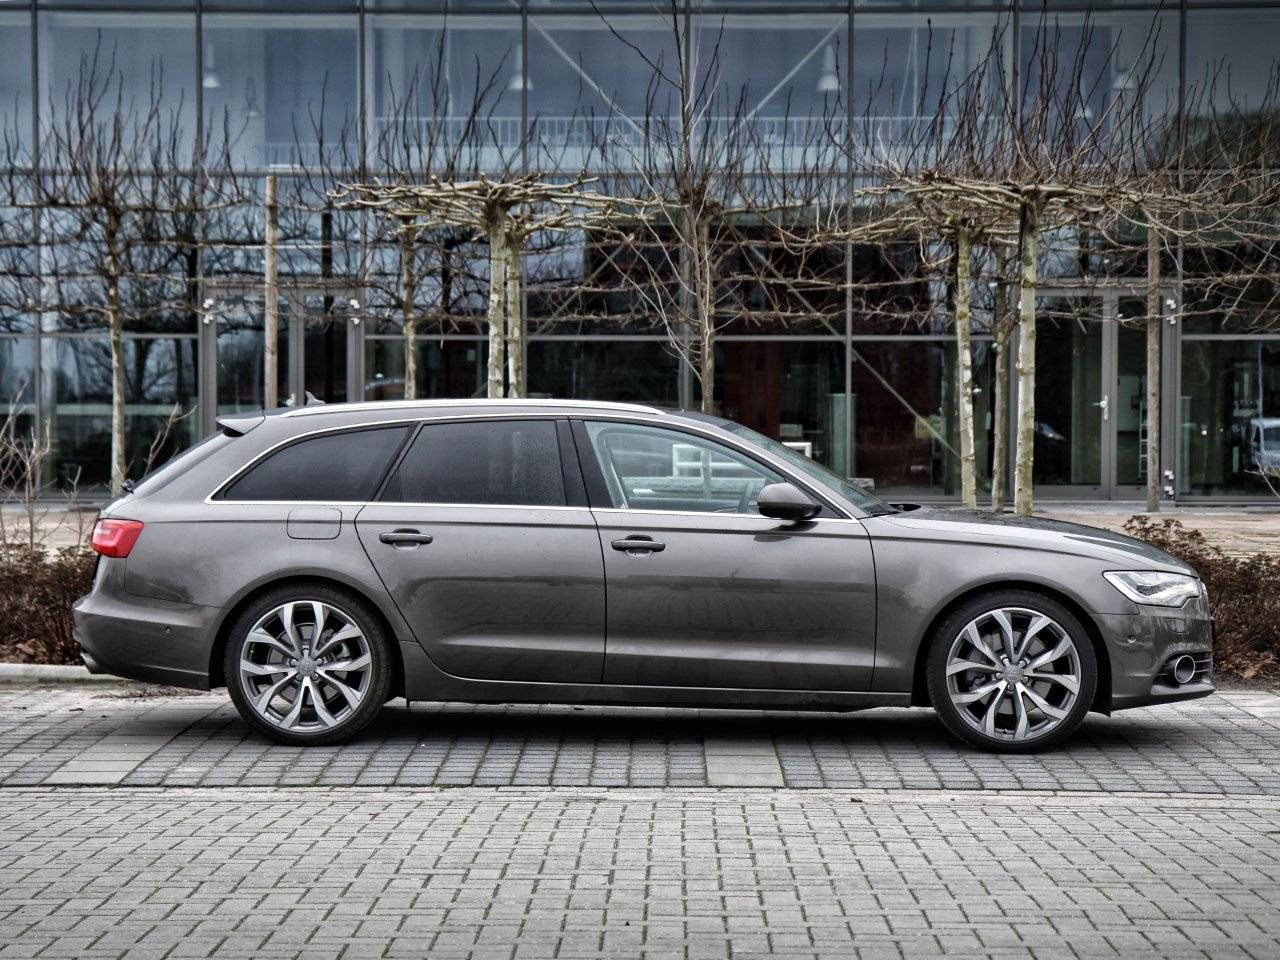 Test Audi A6 Avant Autotests Autowereld Com